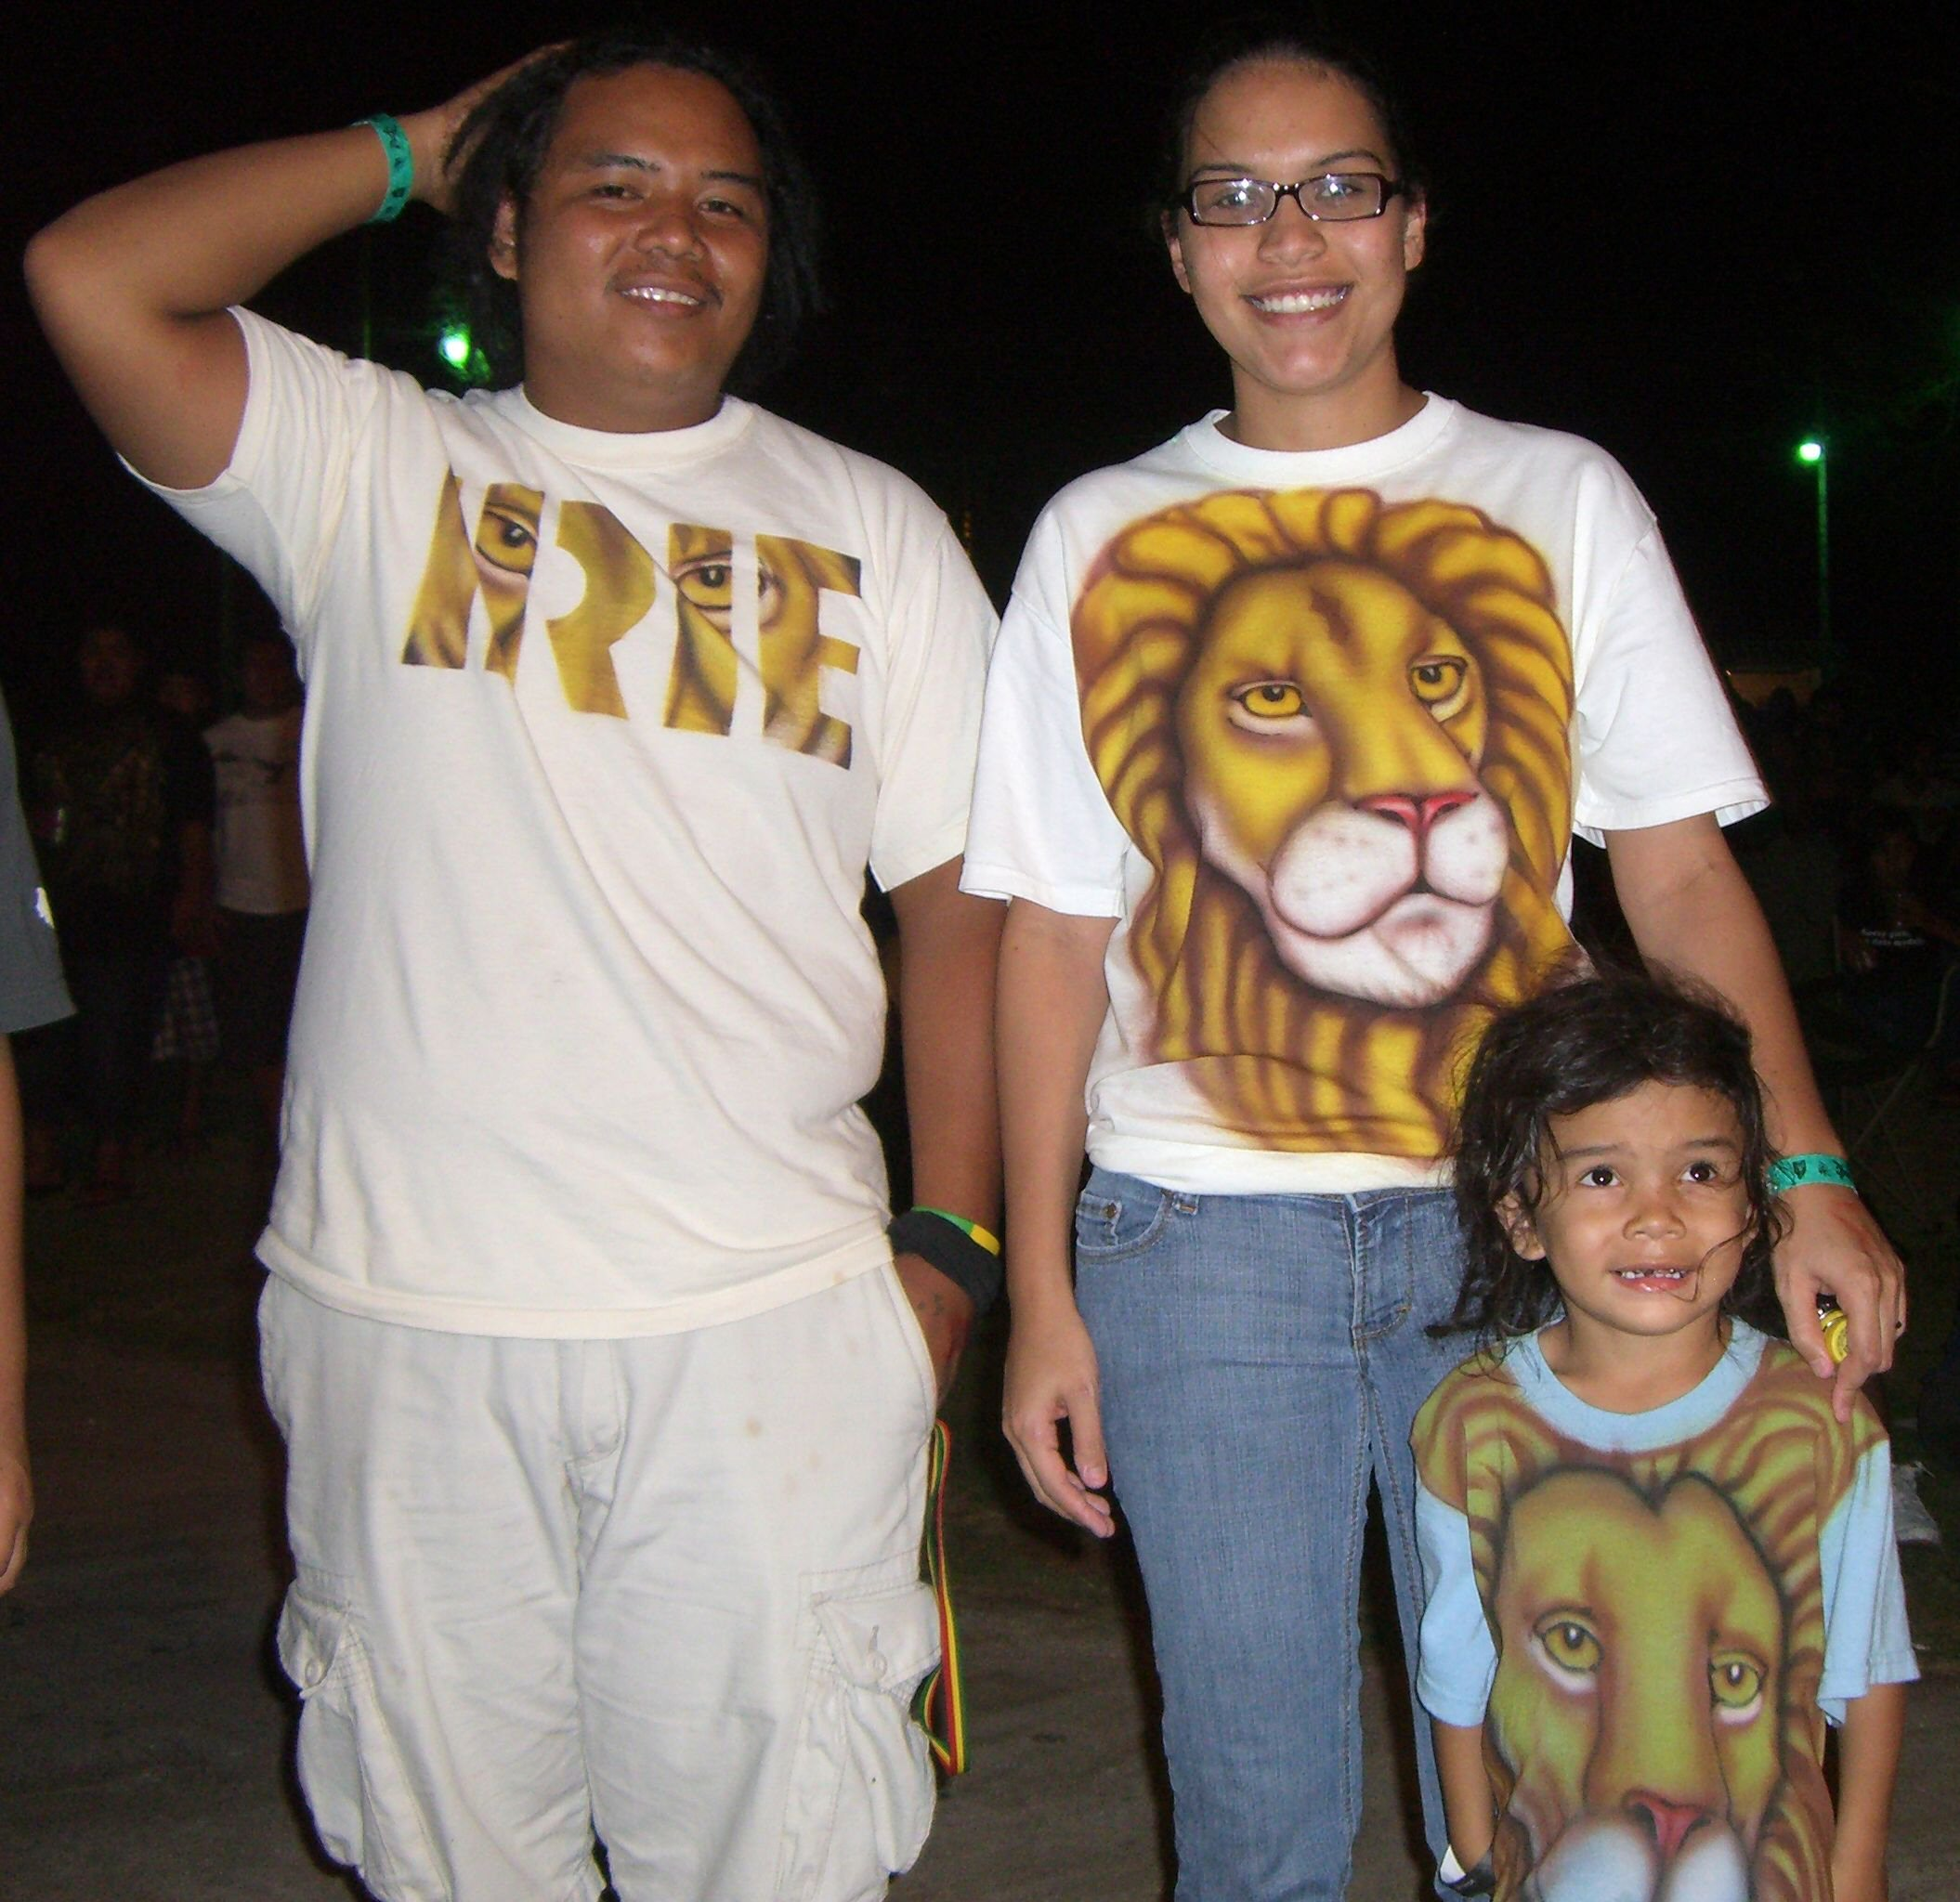 Friends in Mystic Lion Art Shirts